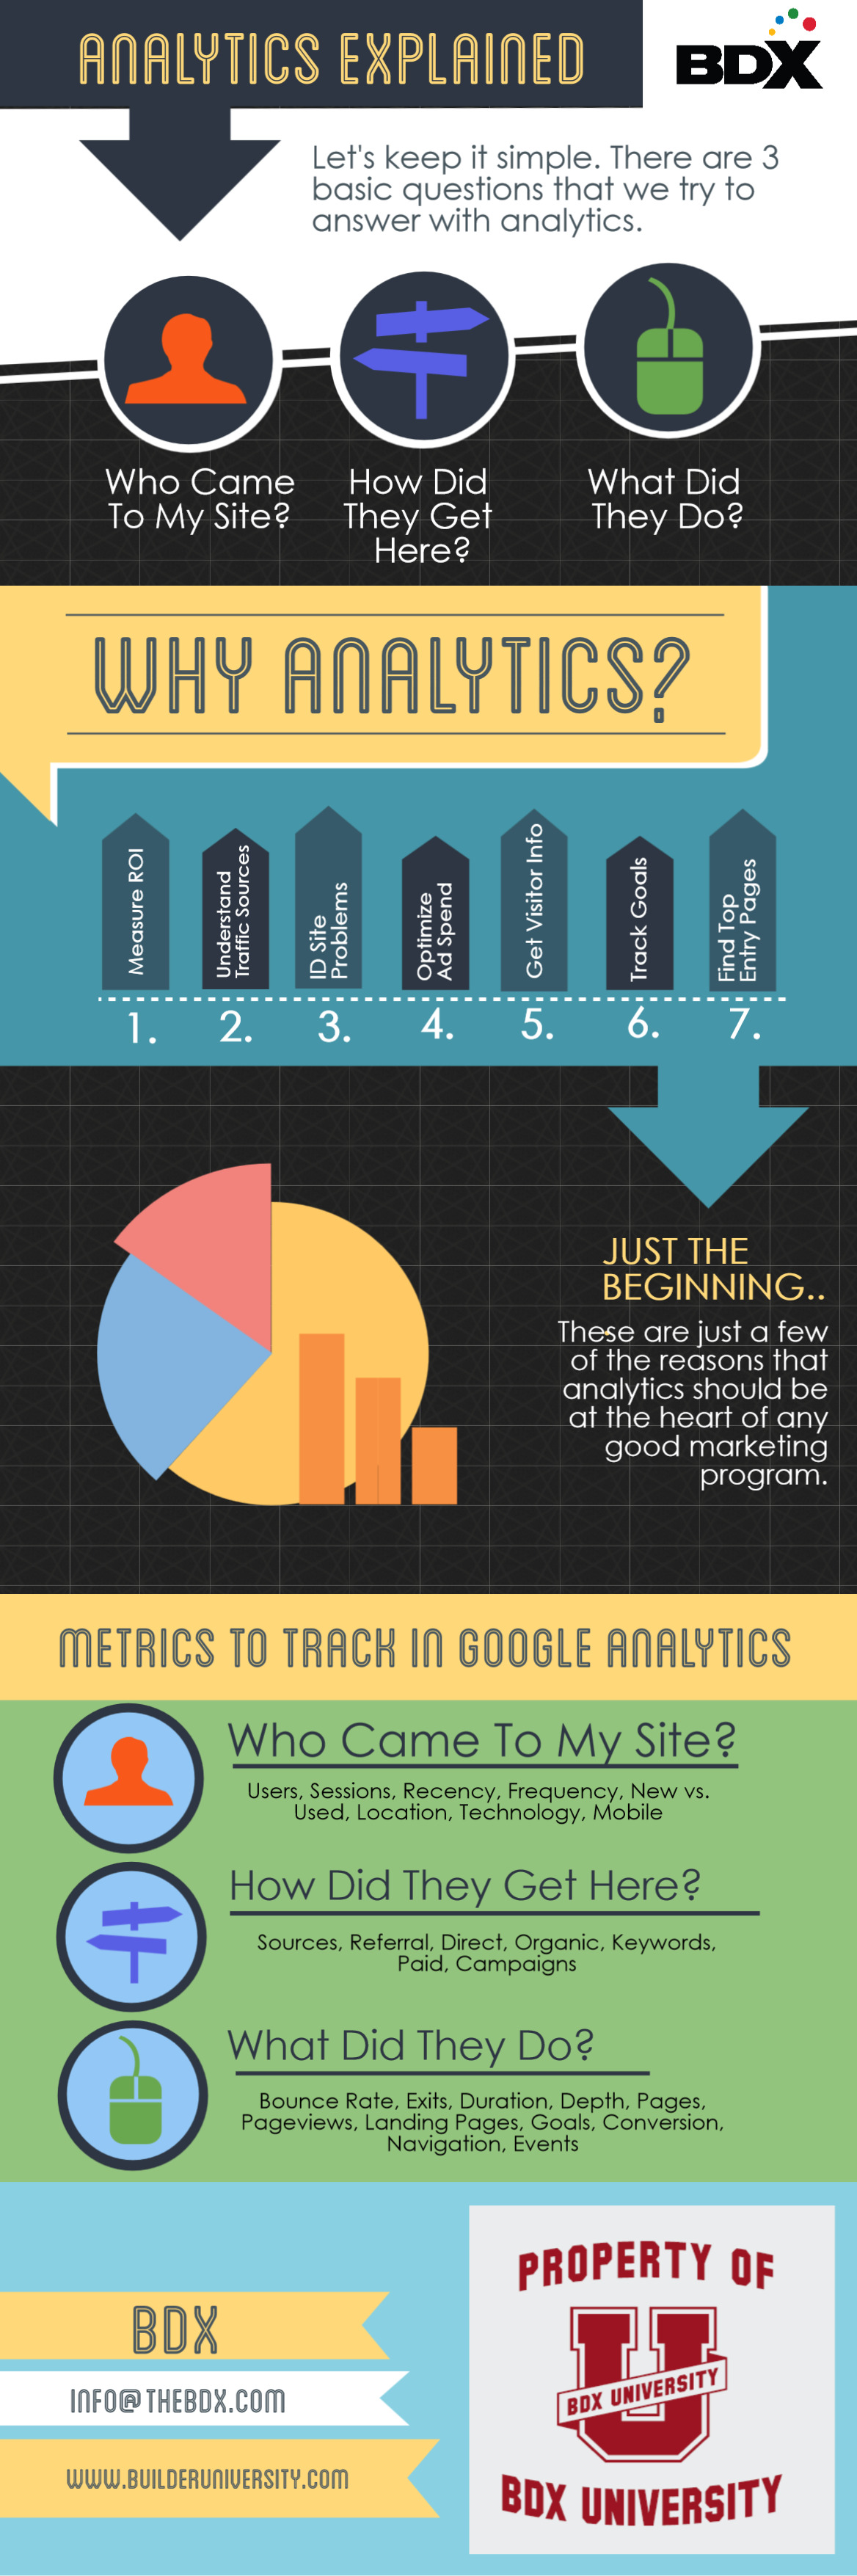 Infographic answers the 3 basic questions about analytics.